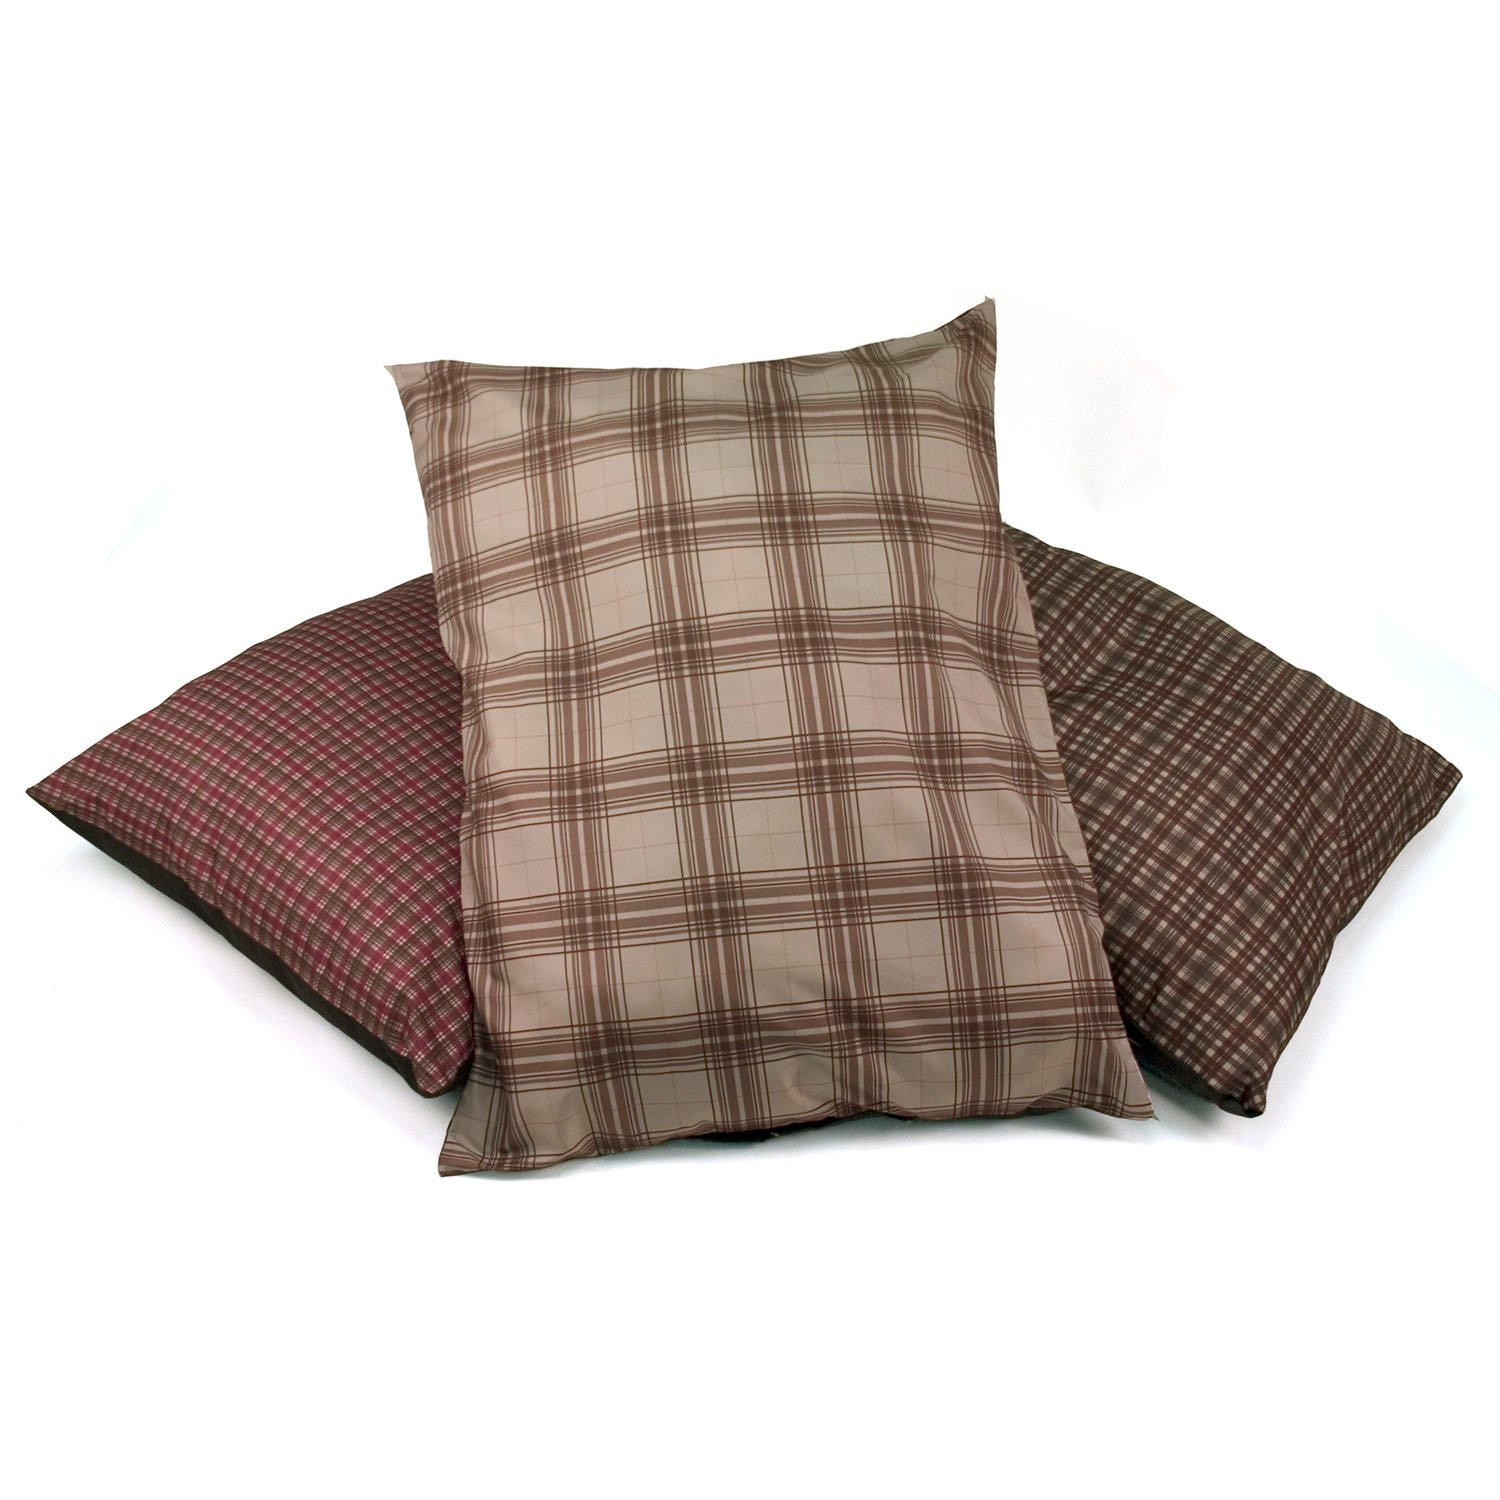 Dallas Manufacturing Dog Bed 3 Pack in Mixed Plaid